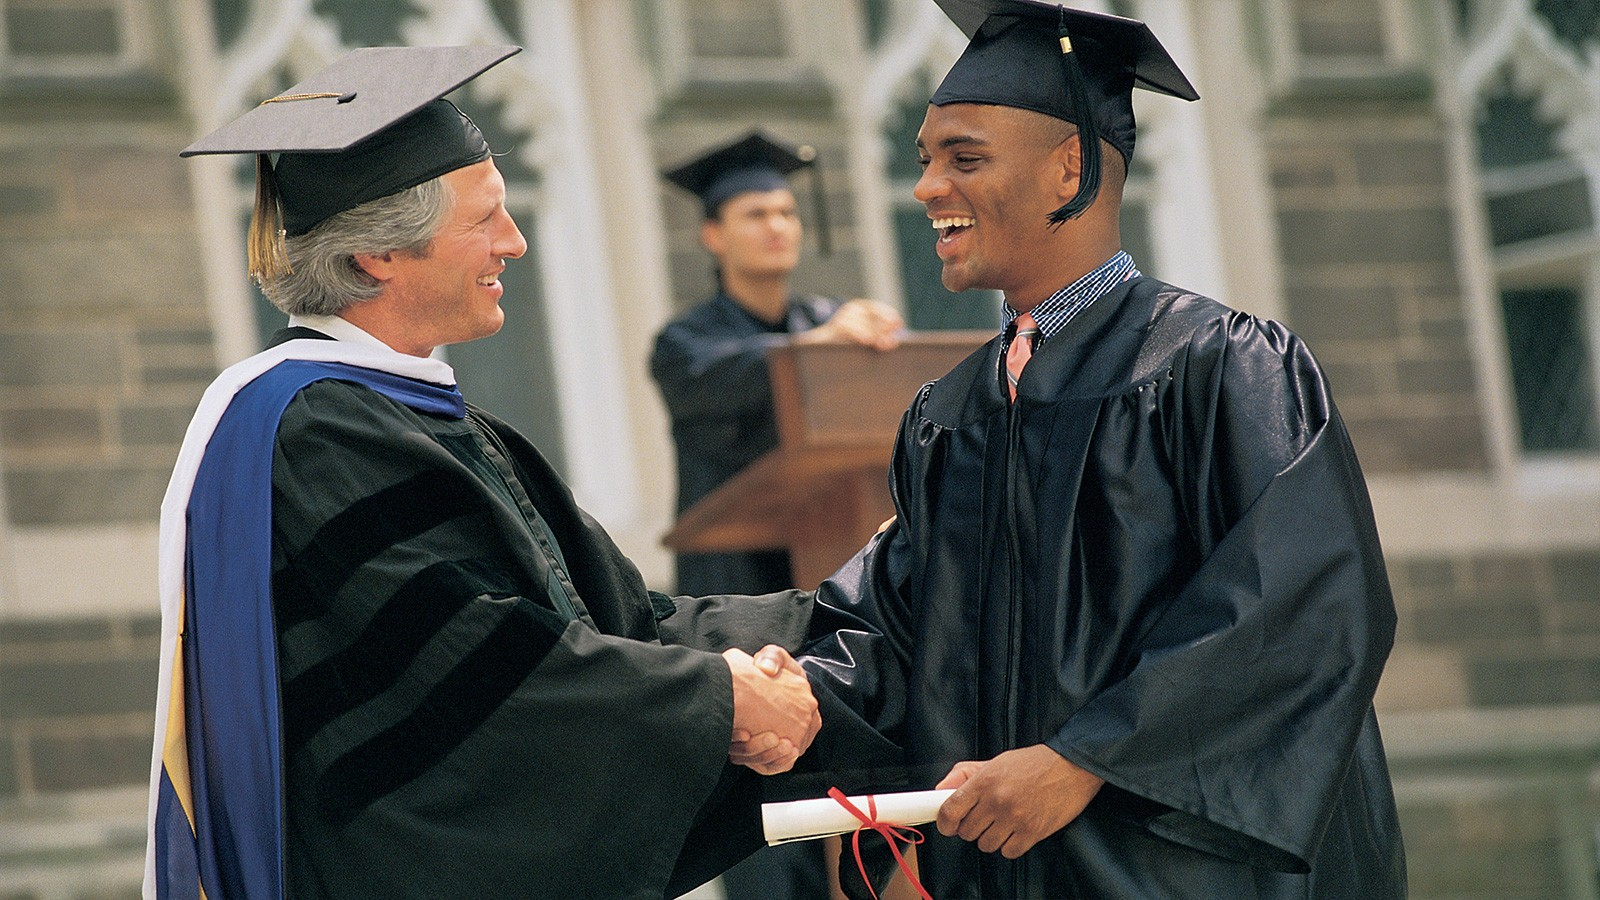 man receiving diploma at graduation